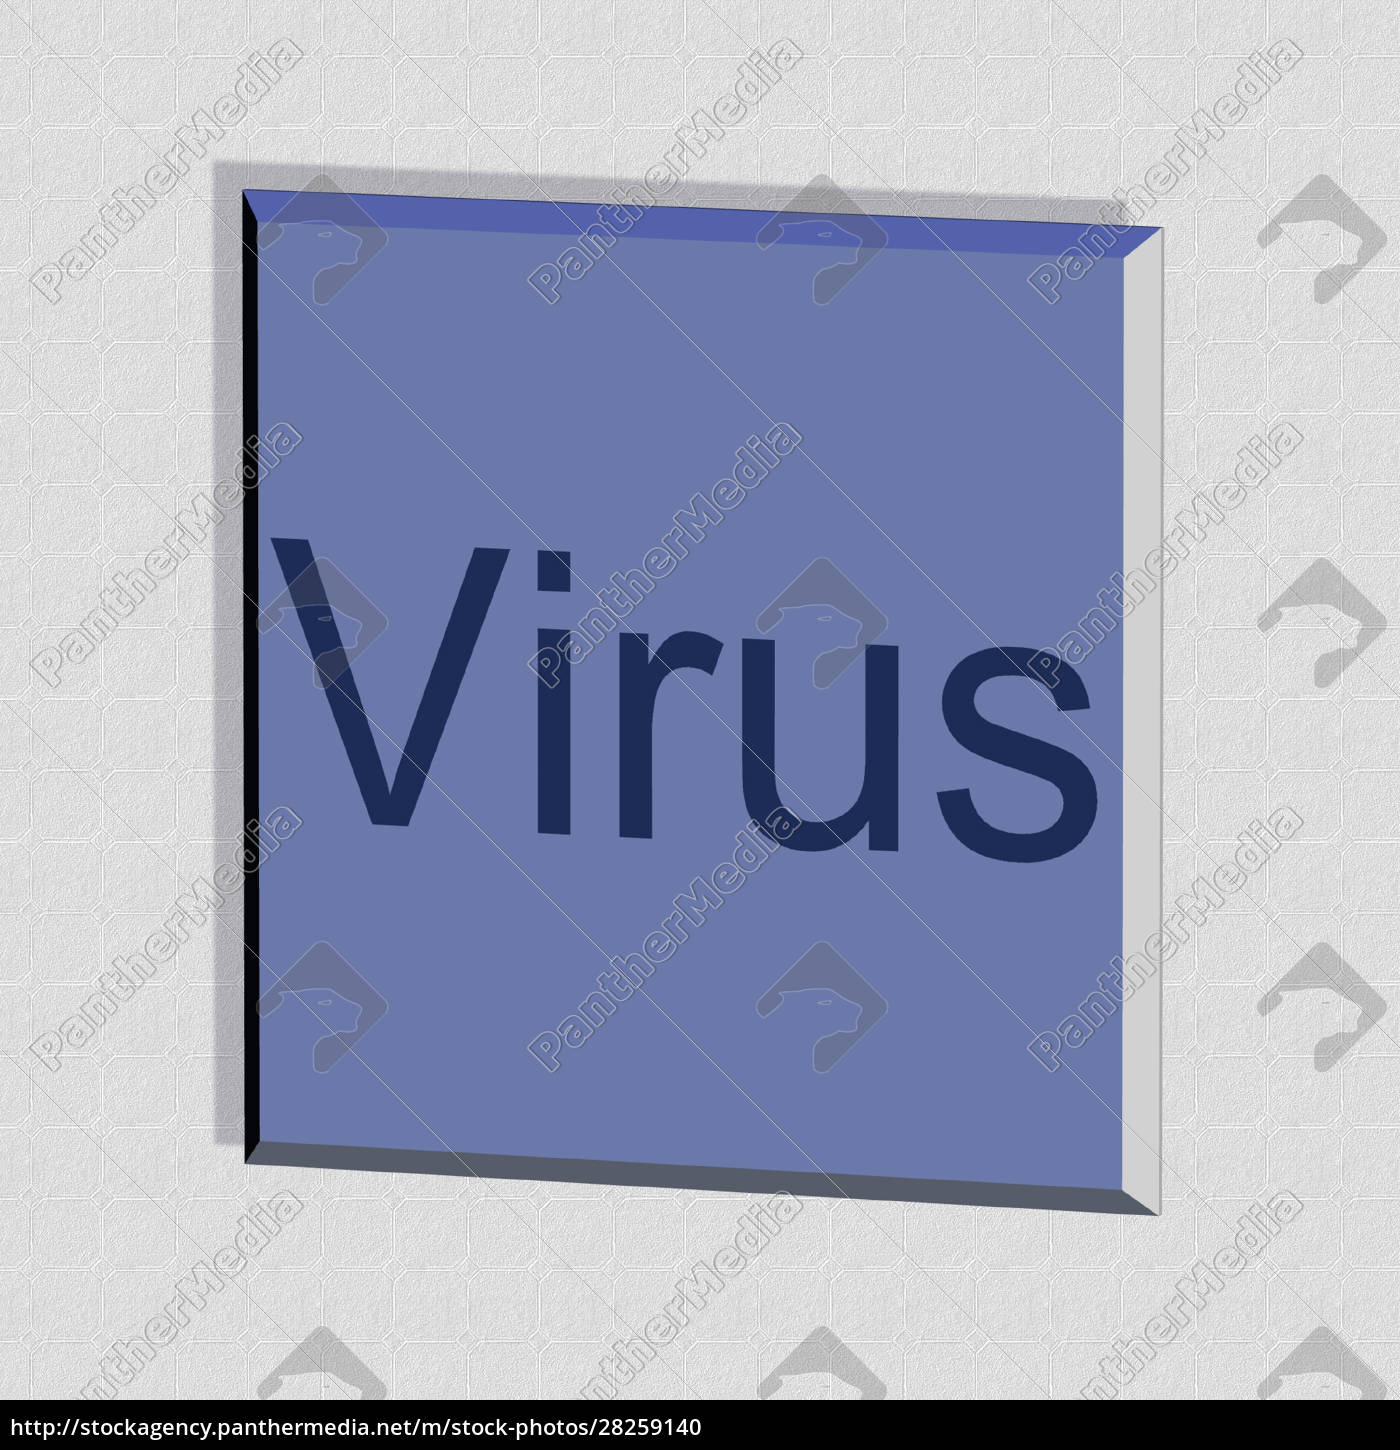 virus, -, word, or, text, as - 28259140